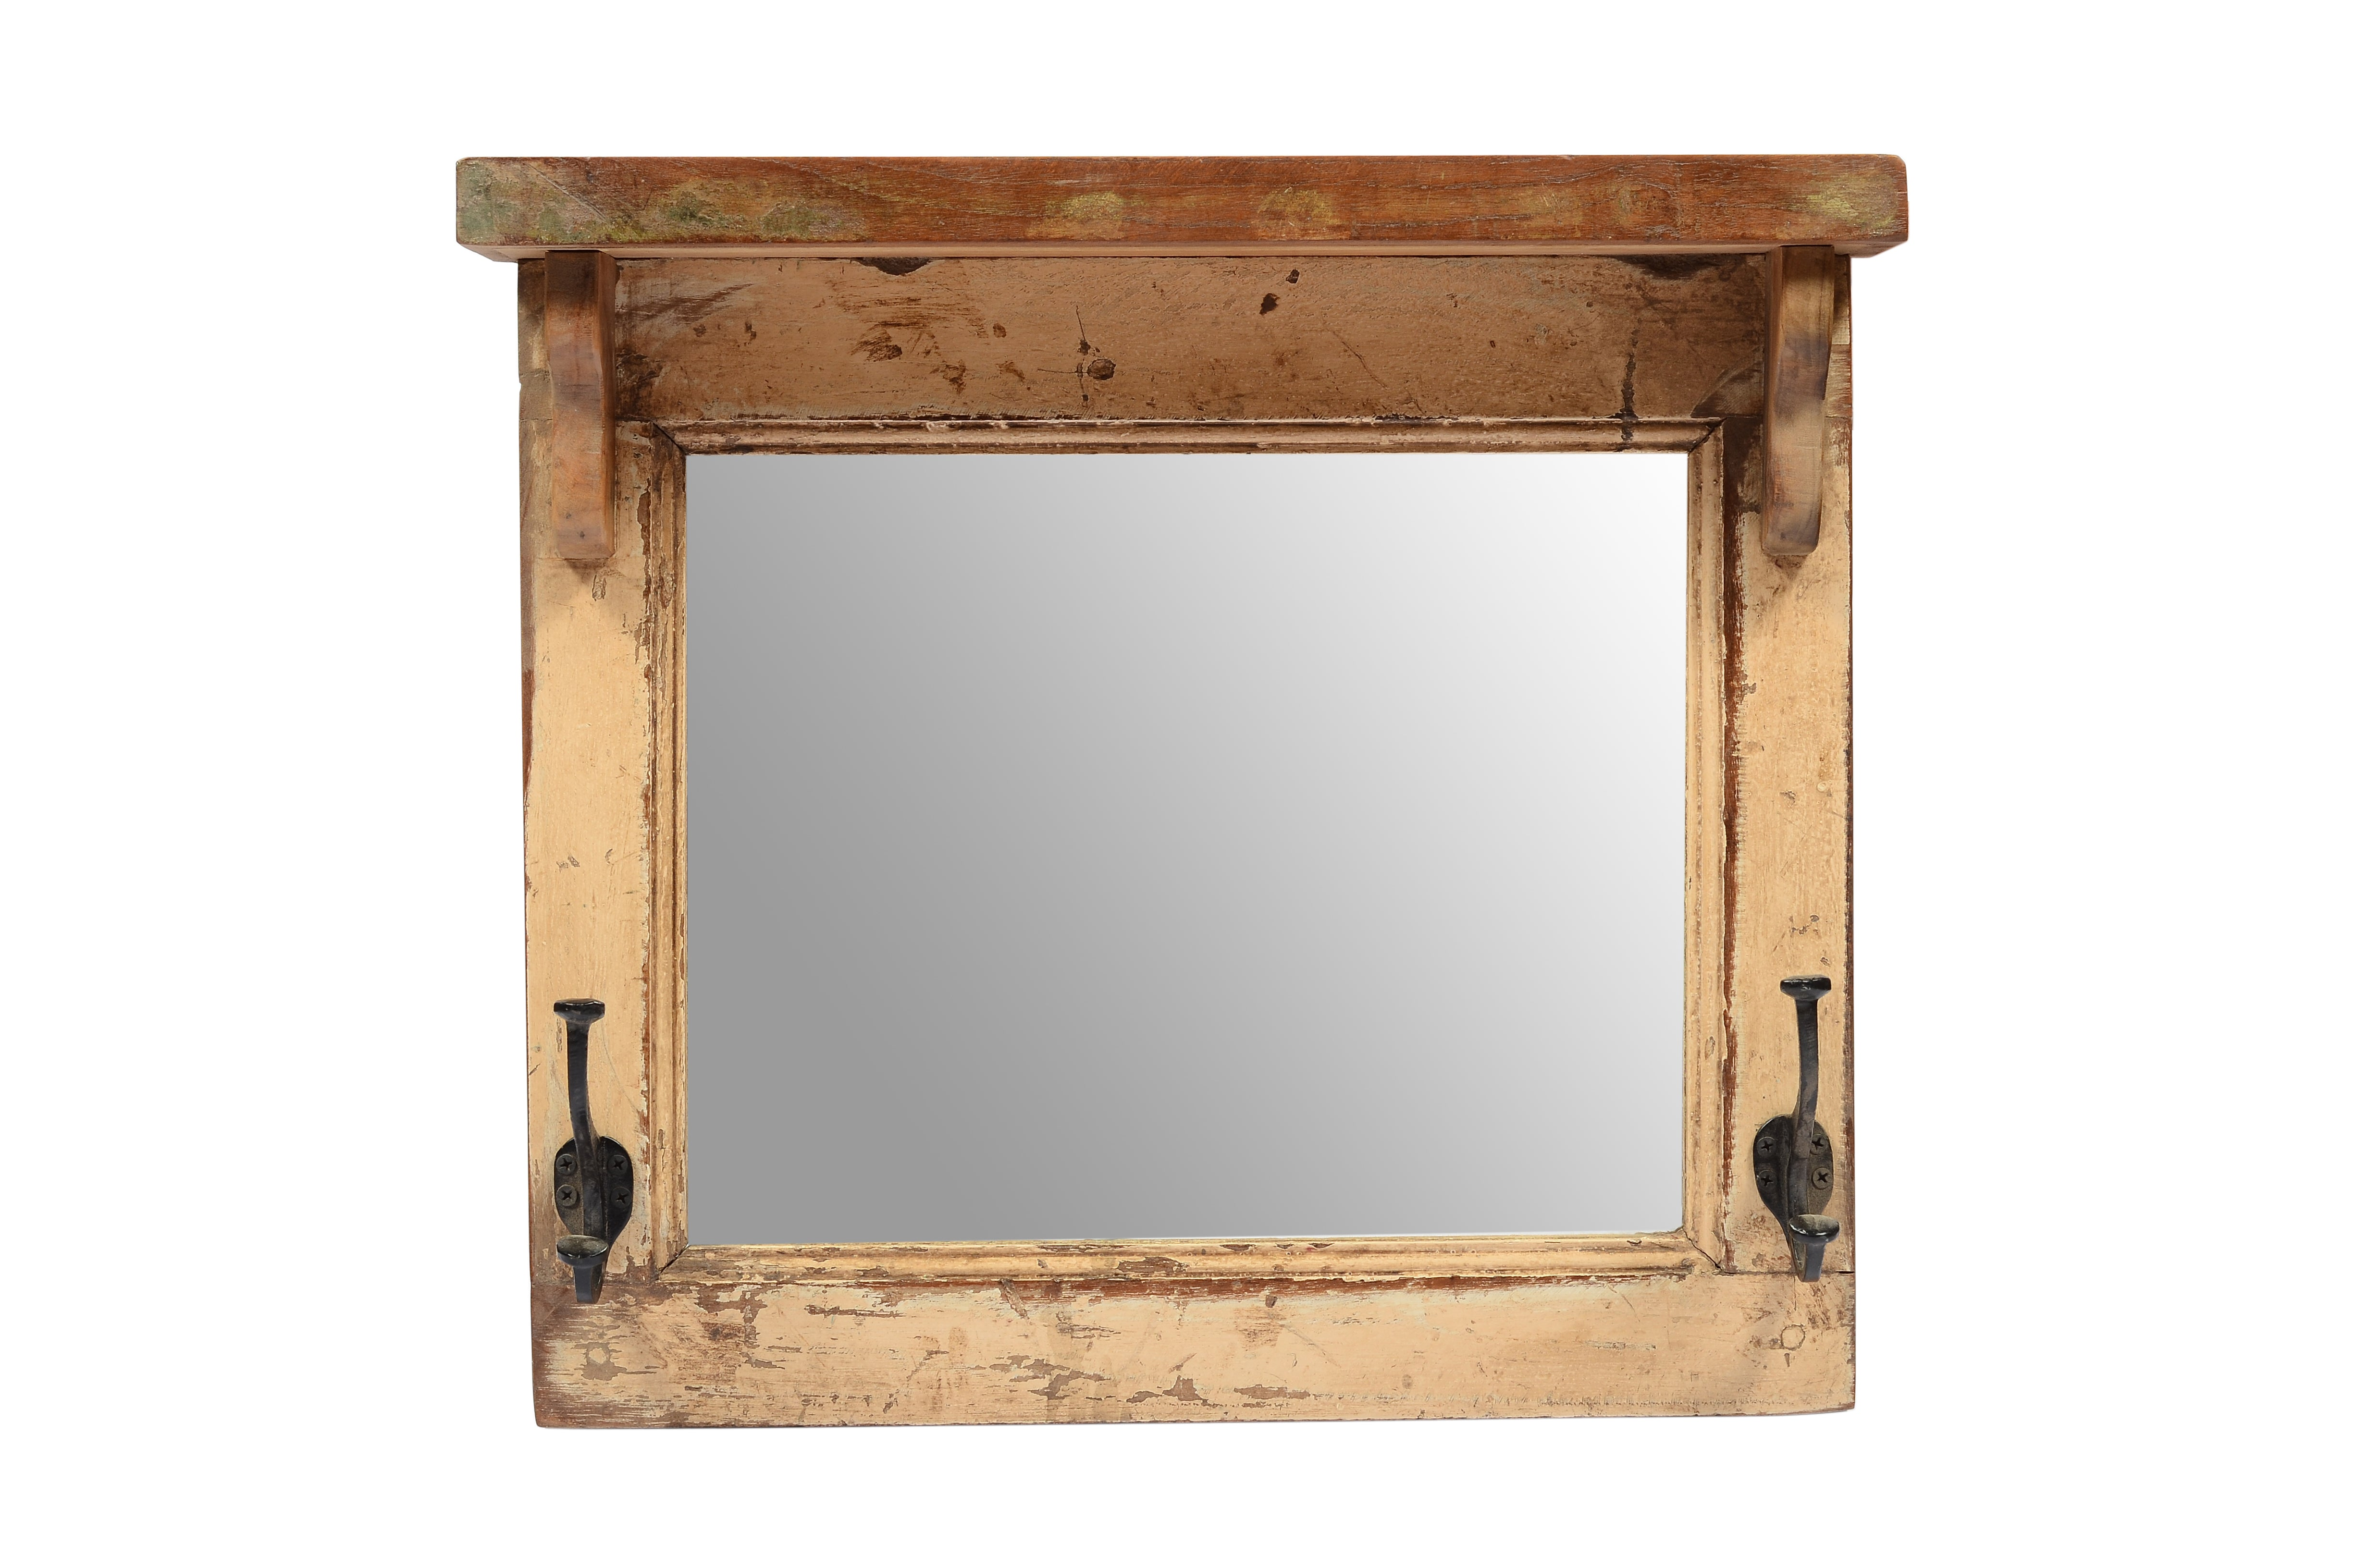 Upcycled Old Window Mirror (MR-002)